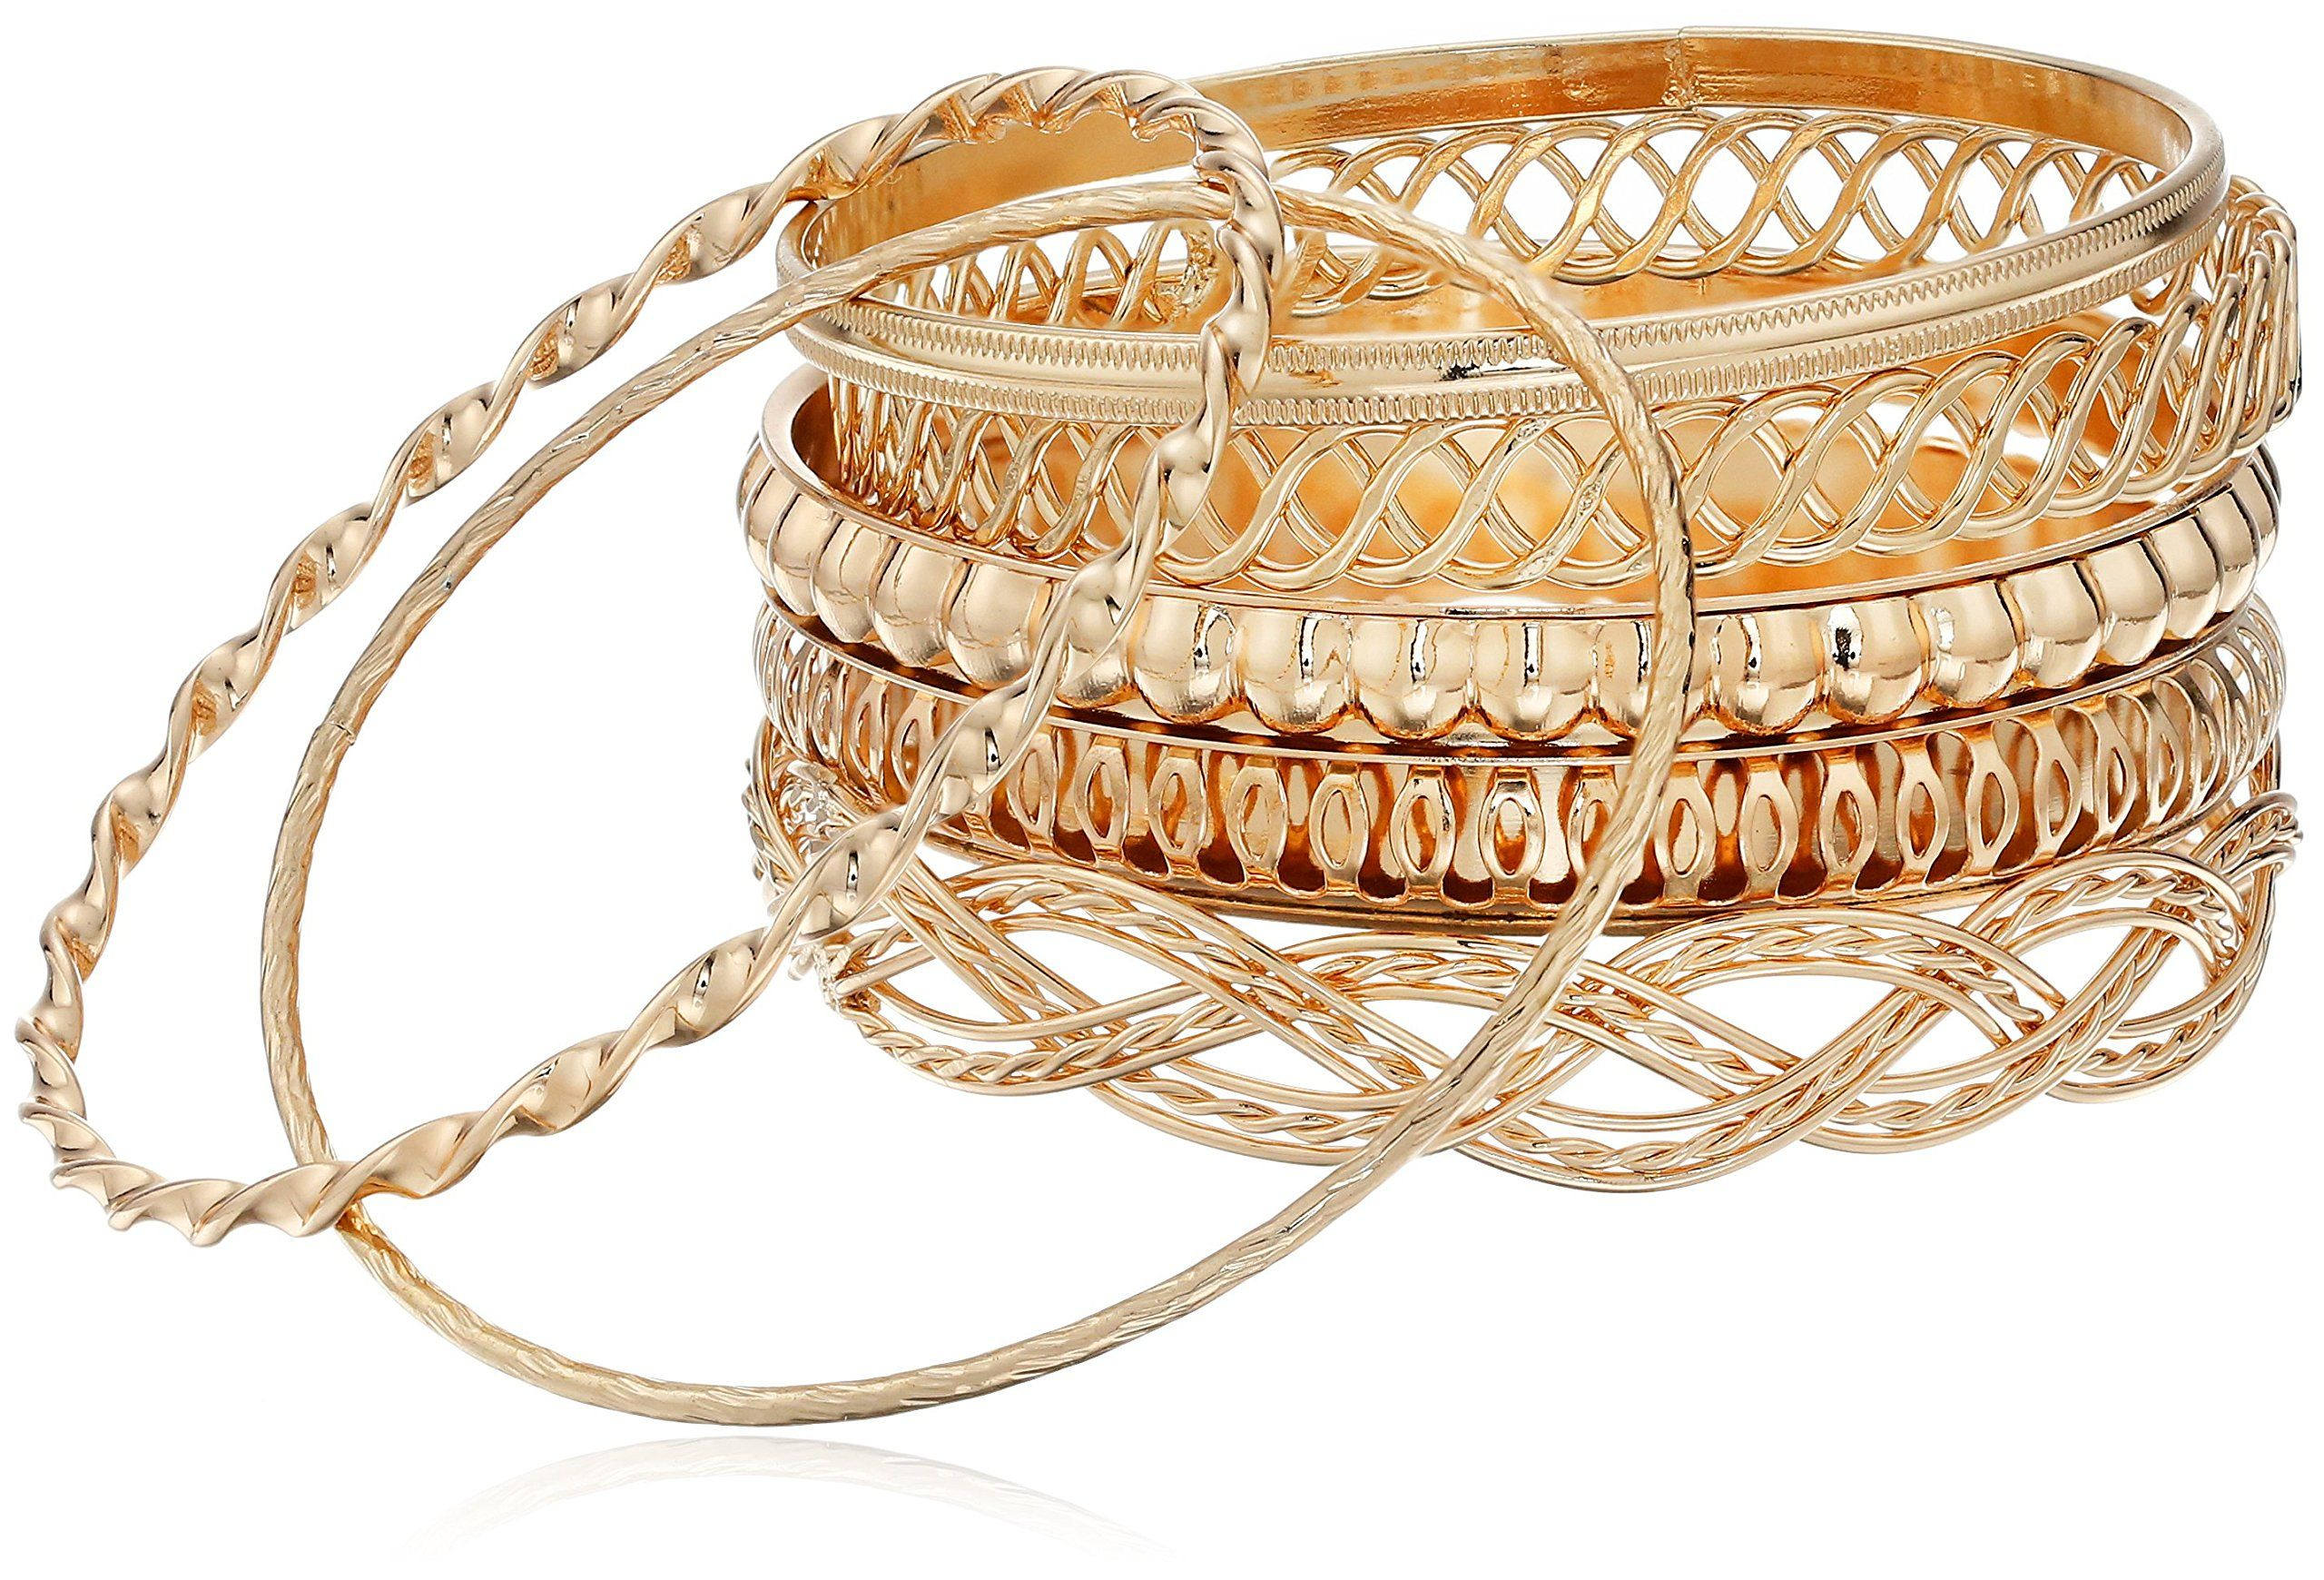 best love cartier of cuffs bracelets bangles jewellery brands boodles the watches fashion bangle bracelet uk news